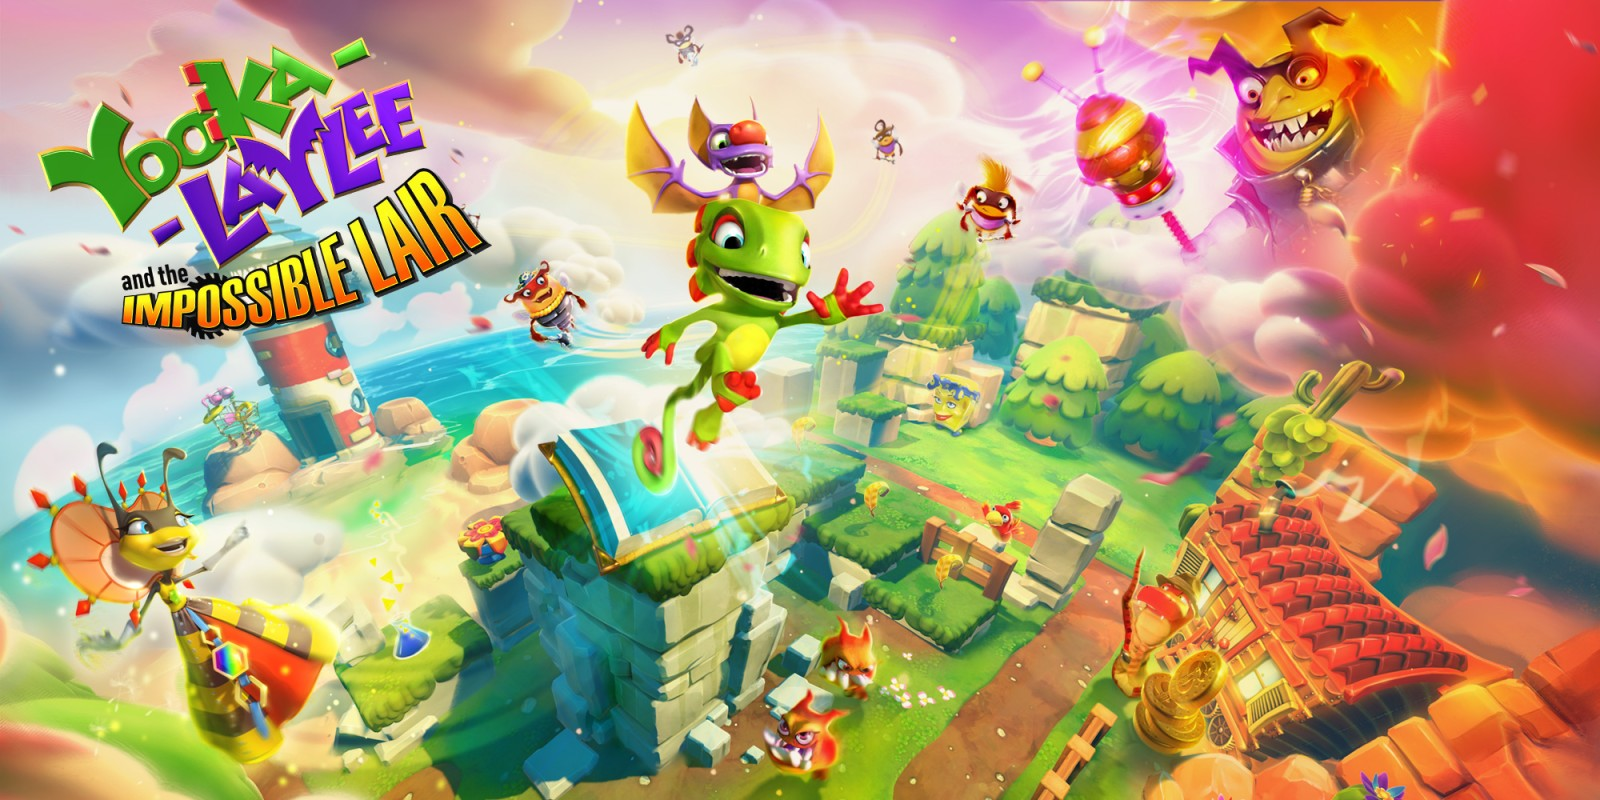 Epic Games Store раздаёт отличный платформер Yooka-Laylee and the Impossible Lair